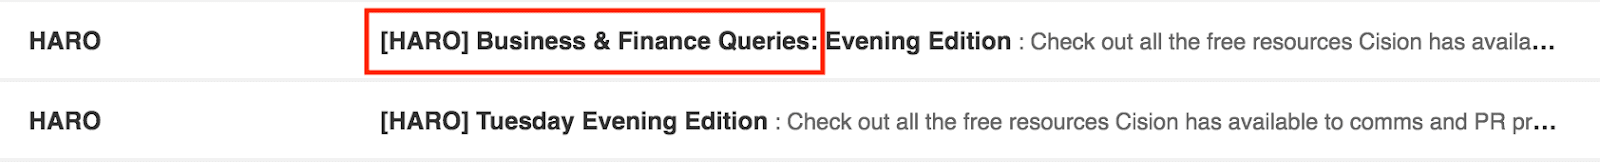 HARO Email Subject Lines